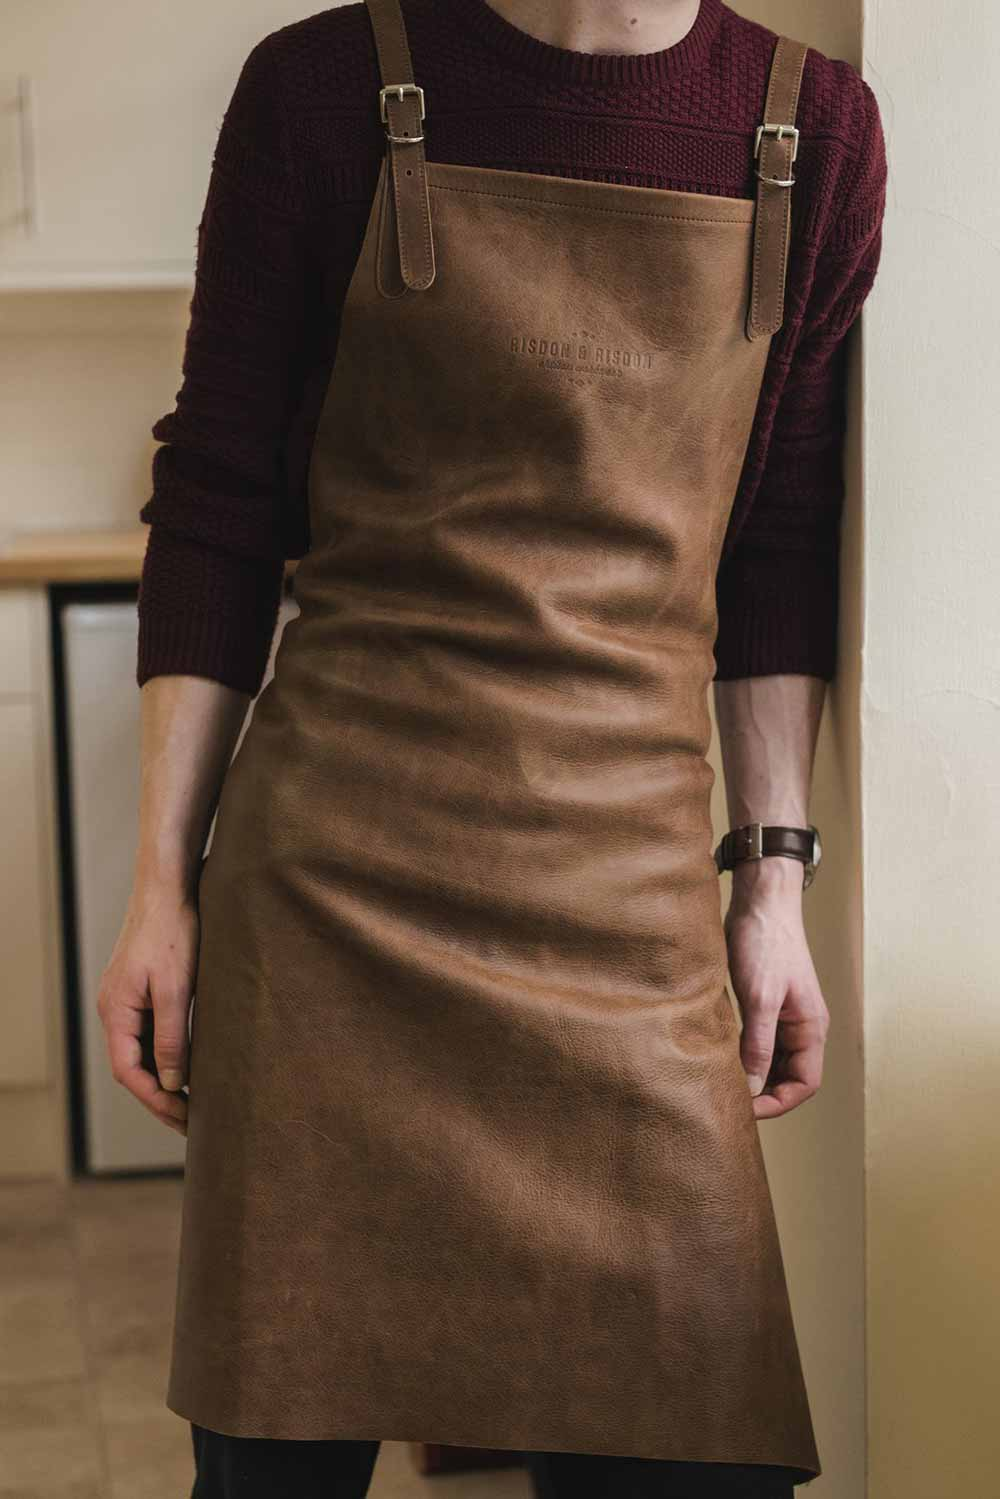 Third Anniversary Gift Ideas Leather Apron